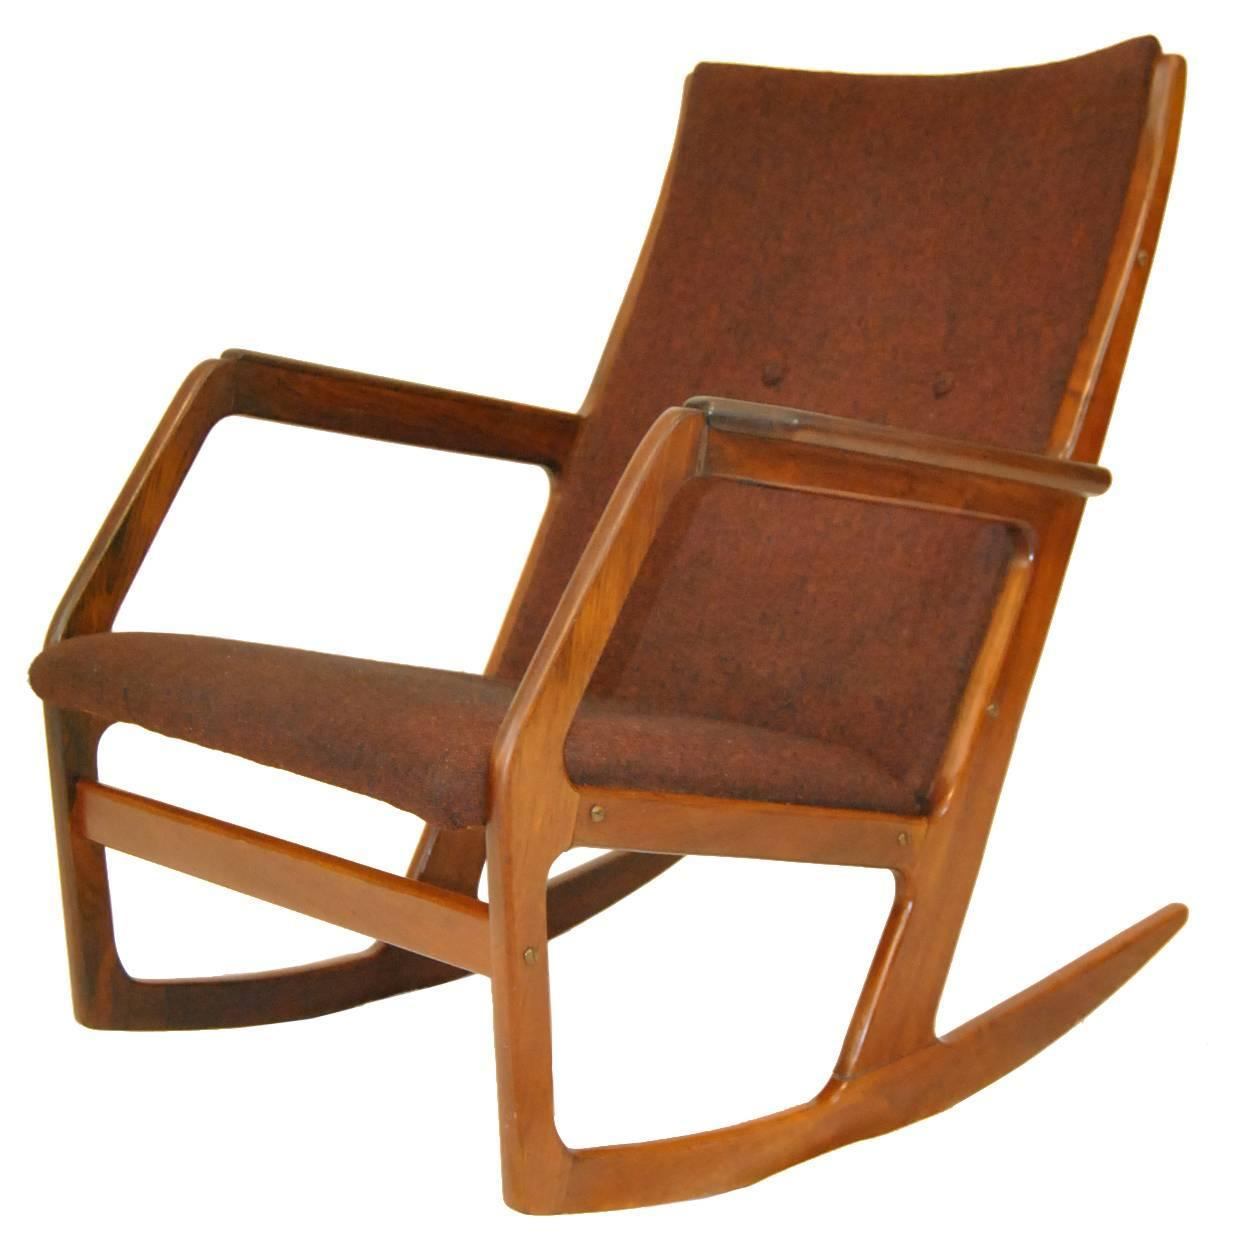 How to make a simple wooden rocking chair - Kubus Model 100 Rocker Designed By Holger Georg Jensen For Sale At 1stdibs